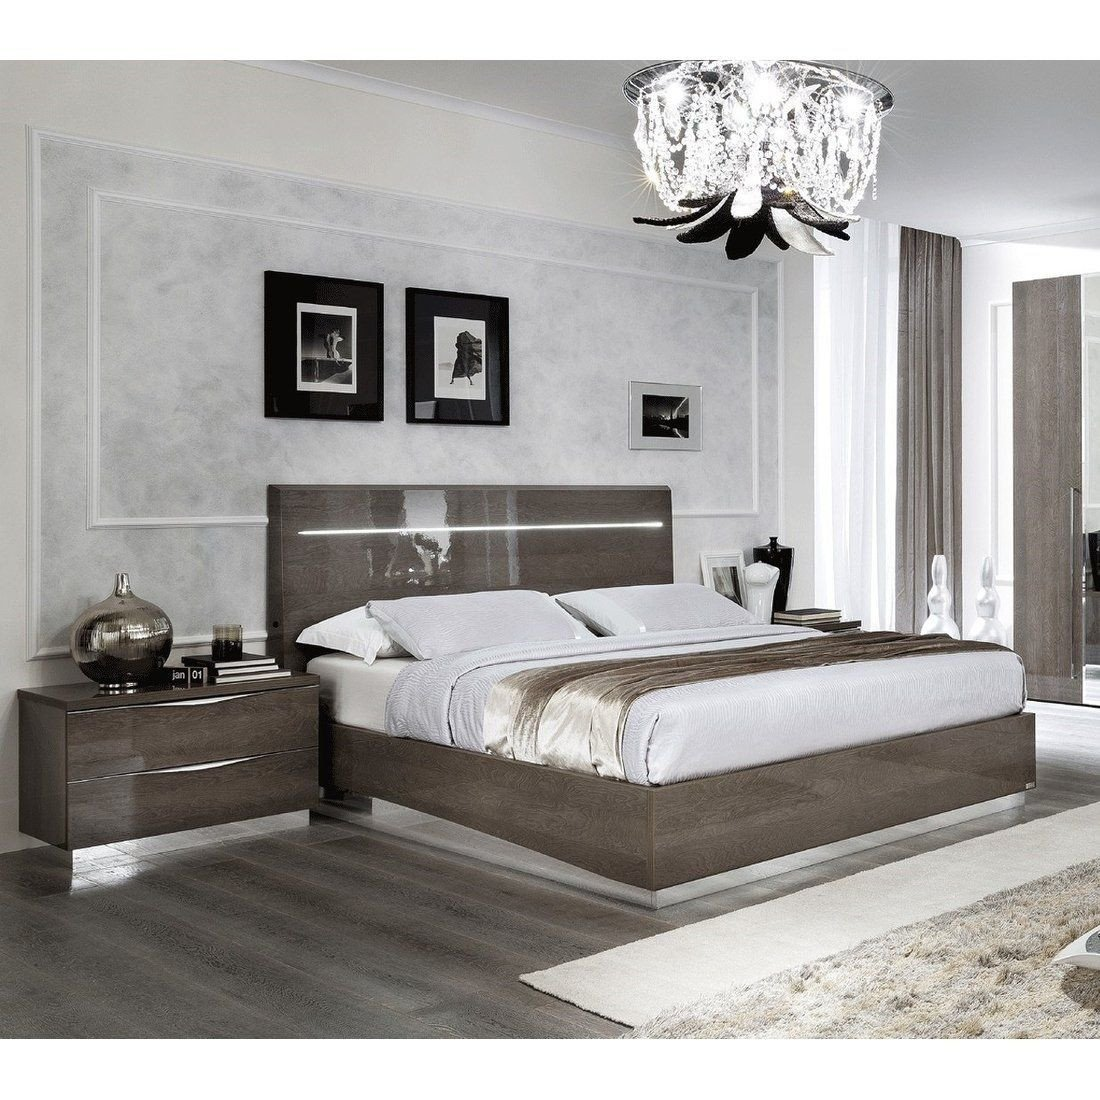 Lighted Headboard Bedroom Set Awesome Luca Home Led Silver Birch Queen Bed Brown